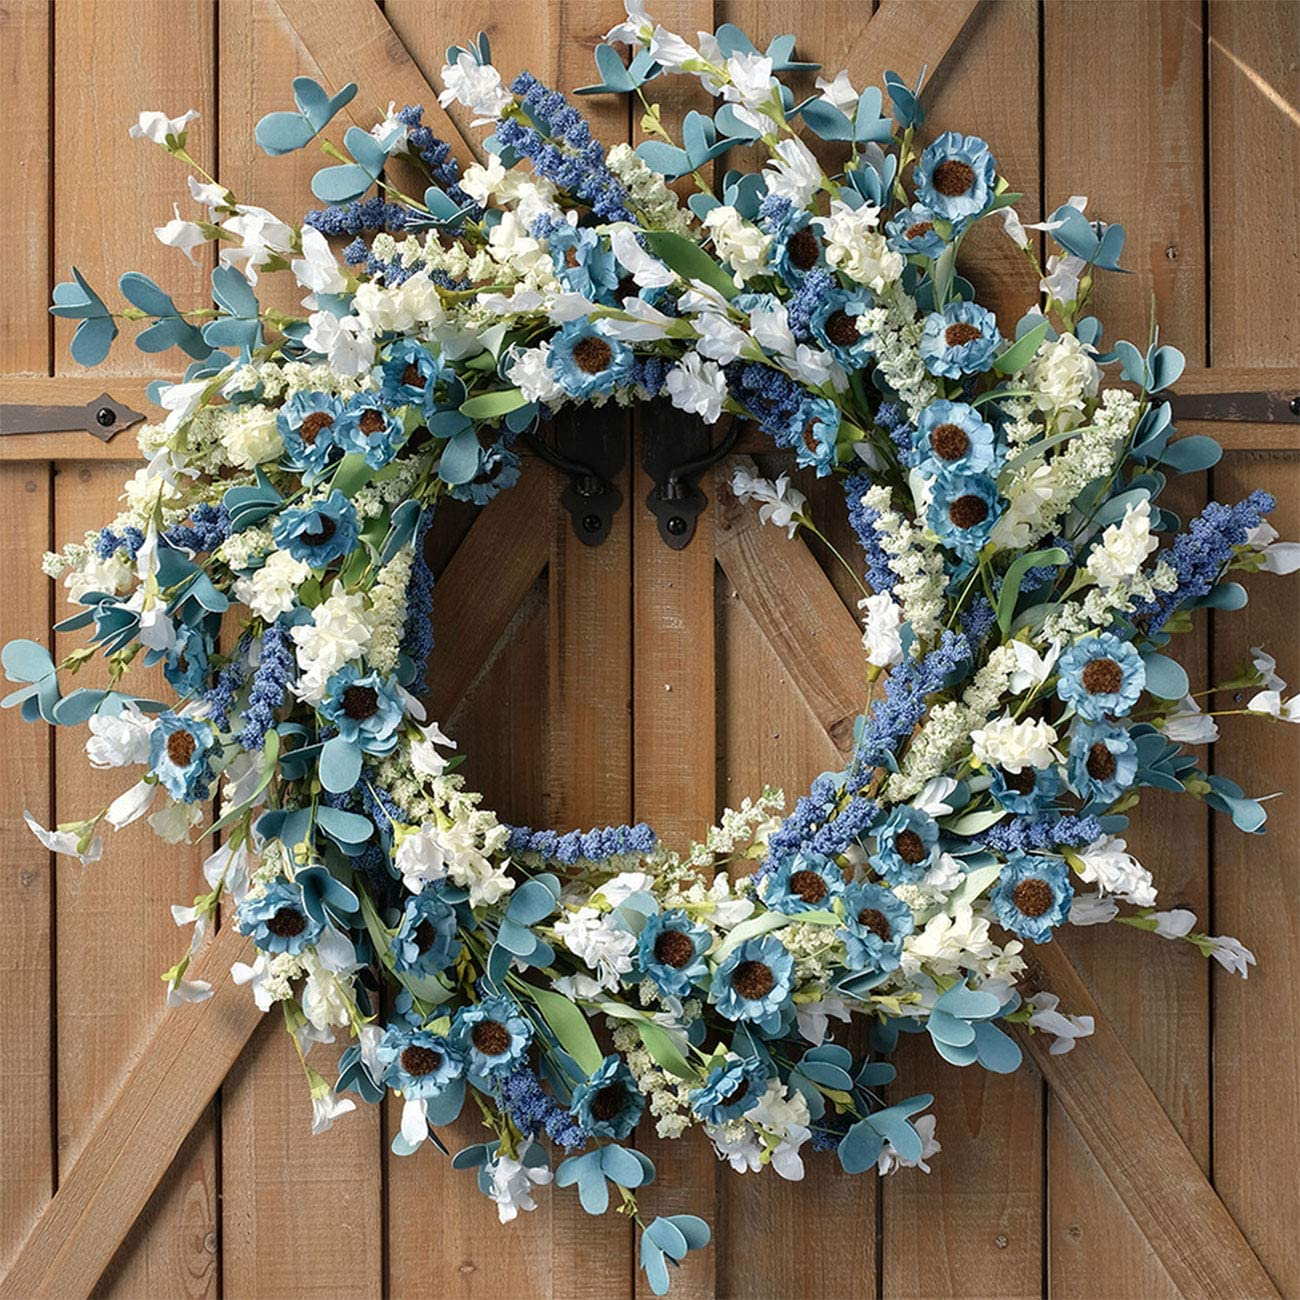 Bibelot 22 Inch Spring Wreath Blue with Green Leaves Wreath Blue Daisy Artificial Grains White Flower Wreath for Front Door Wreath,Farmhouse Decor Indoor&Outdoor Wedding Wall Home Decor